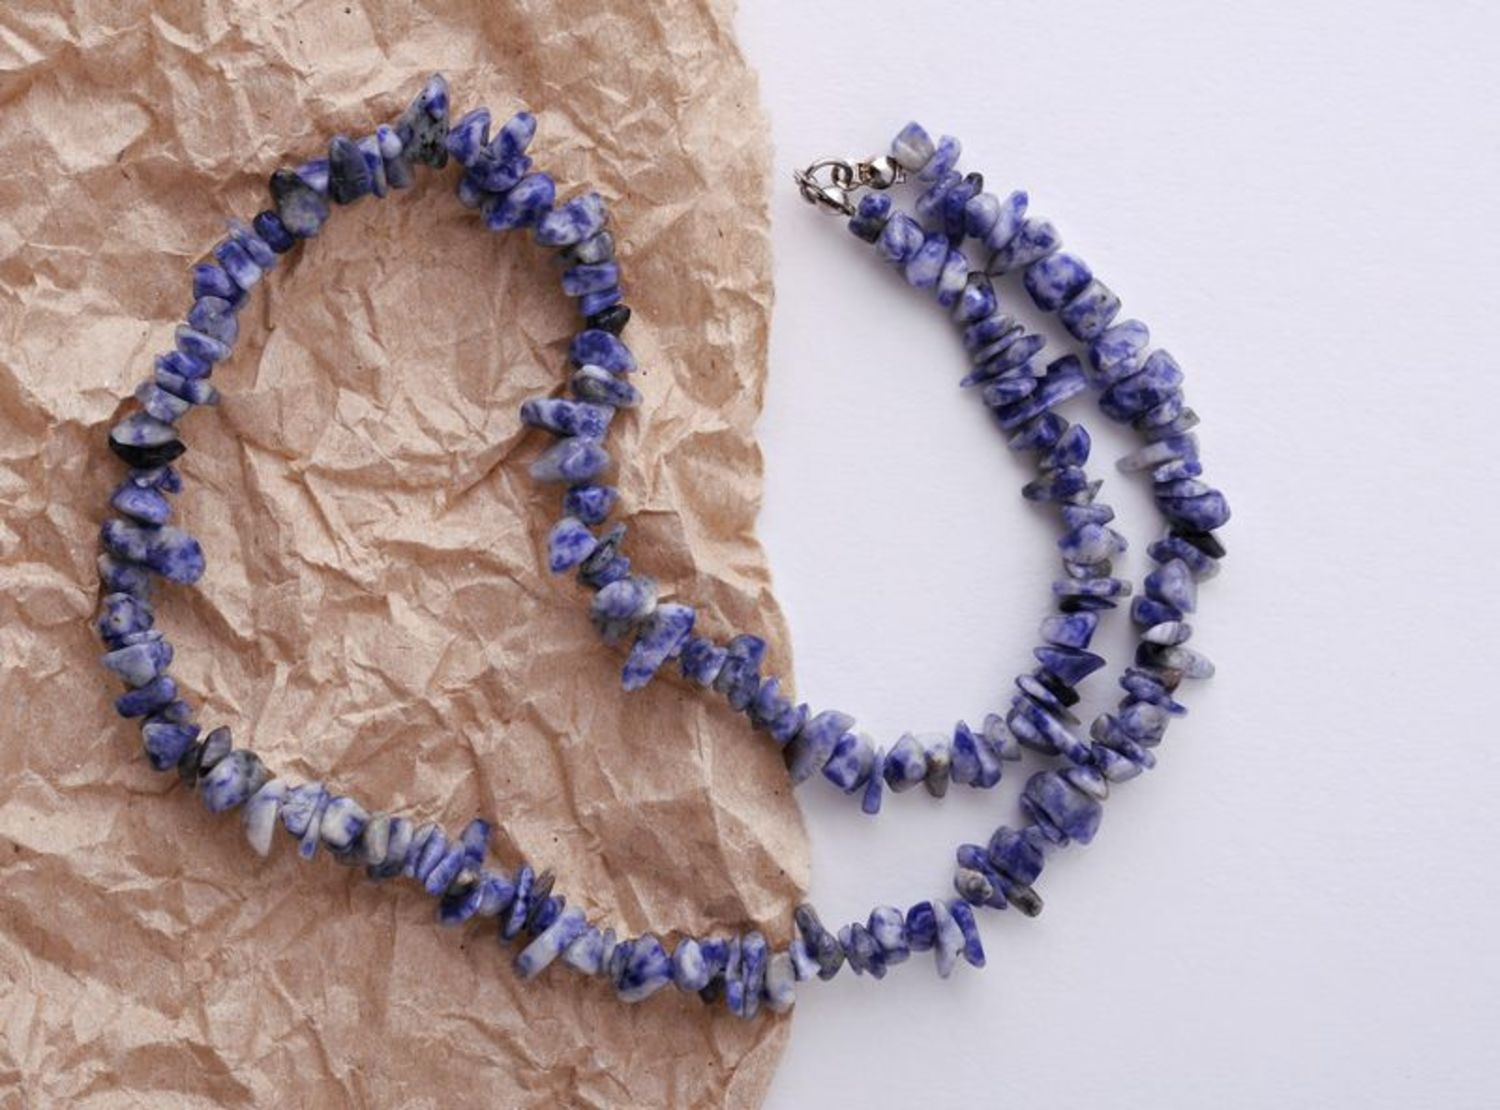 Bead necklace made of natural stone photo 1